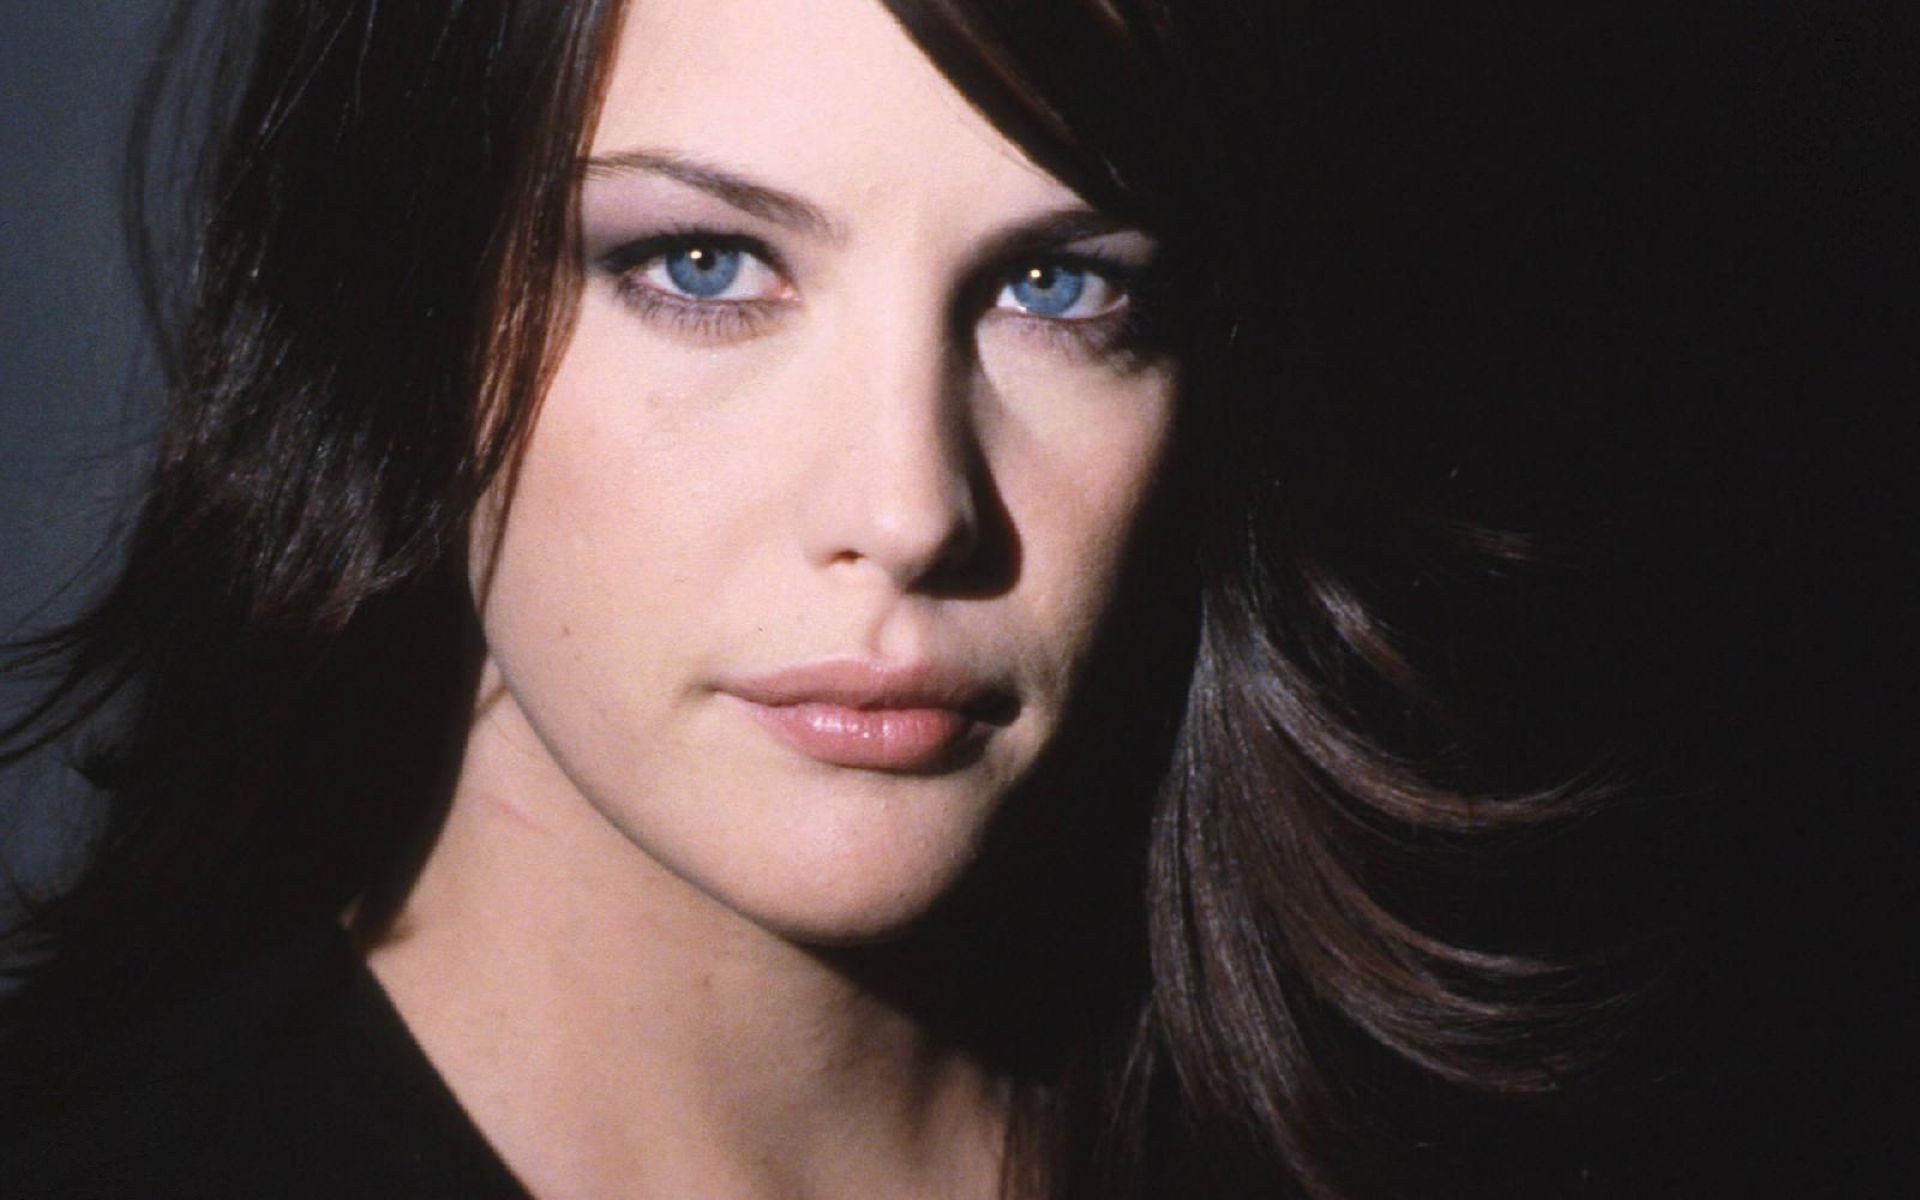 Guild Wars 2 Wallpaper Hd Liv Tyler Wallpapers Pictures Images